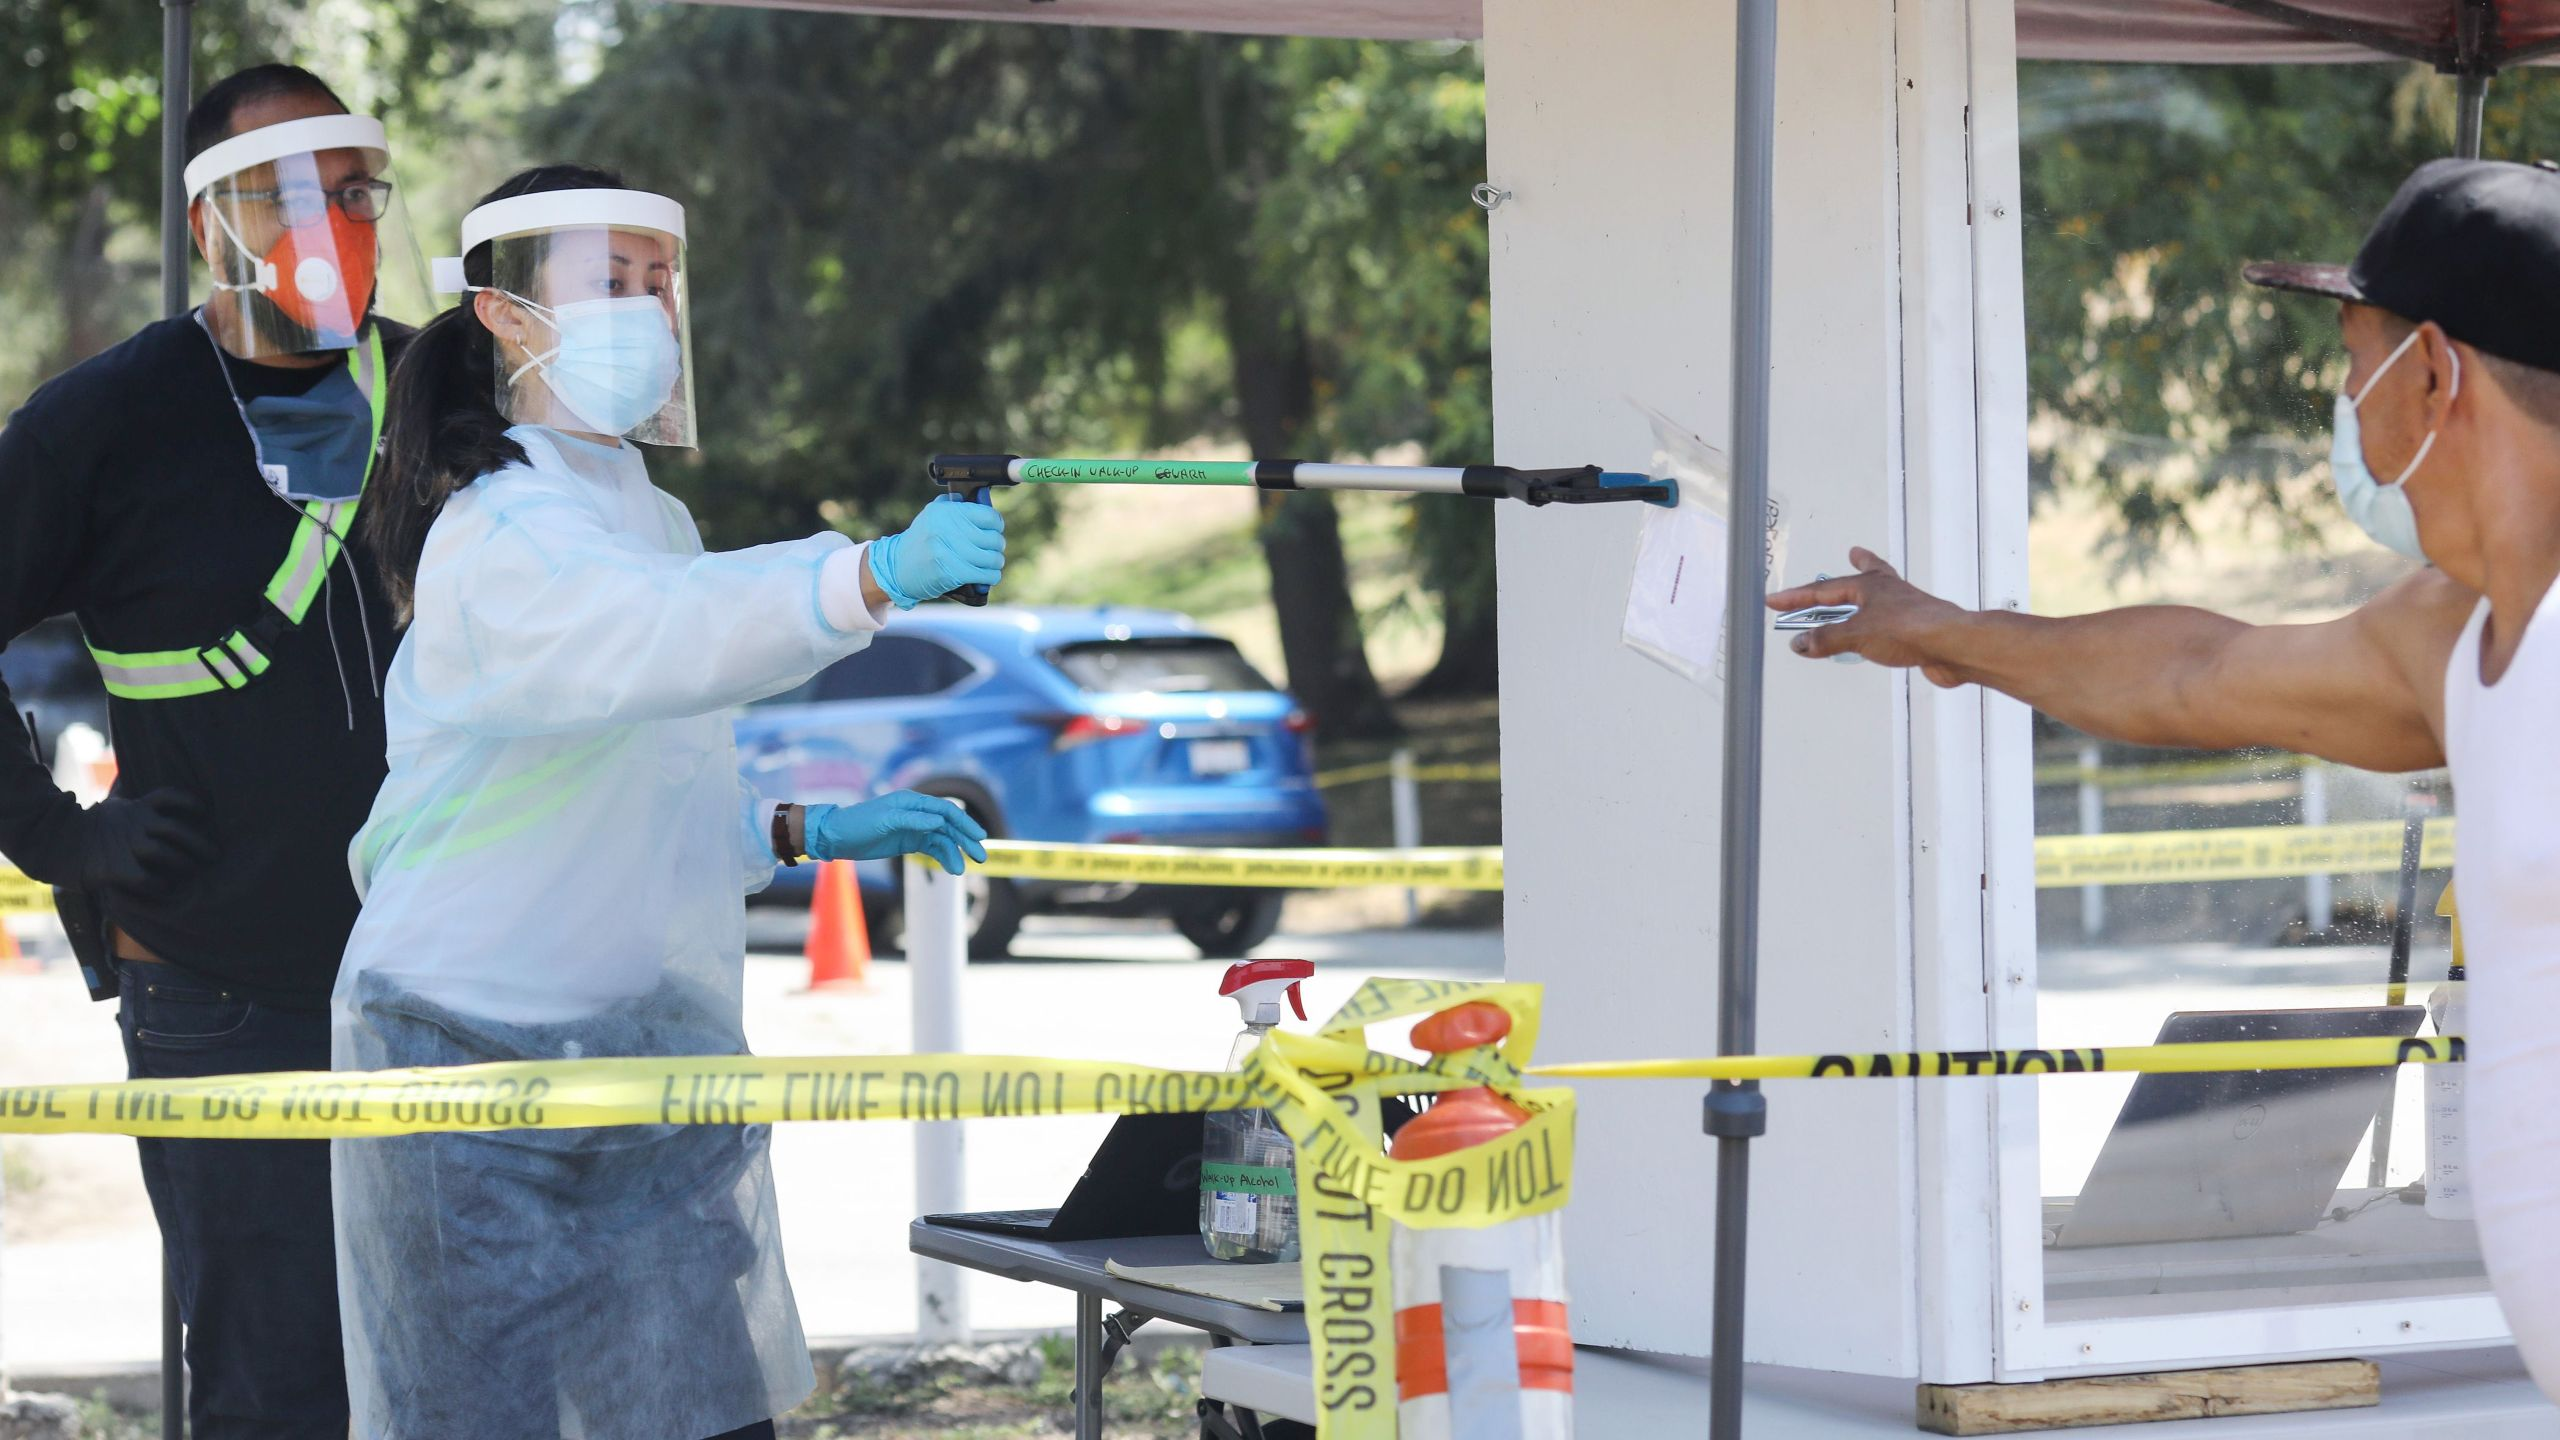 A worker dressed in personal protective equipment passes a biohazard bag containing a self-administered COVID-19 test to a man at a testing center at Lincoln Parkin Los Angeles amid the coronavirus pandemic on July 7, 2020. (Mario Tama/Getty Images)